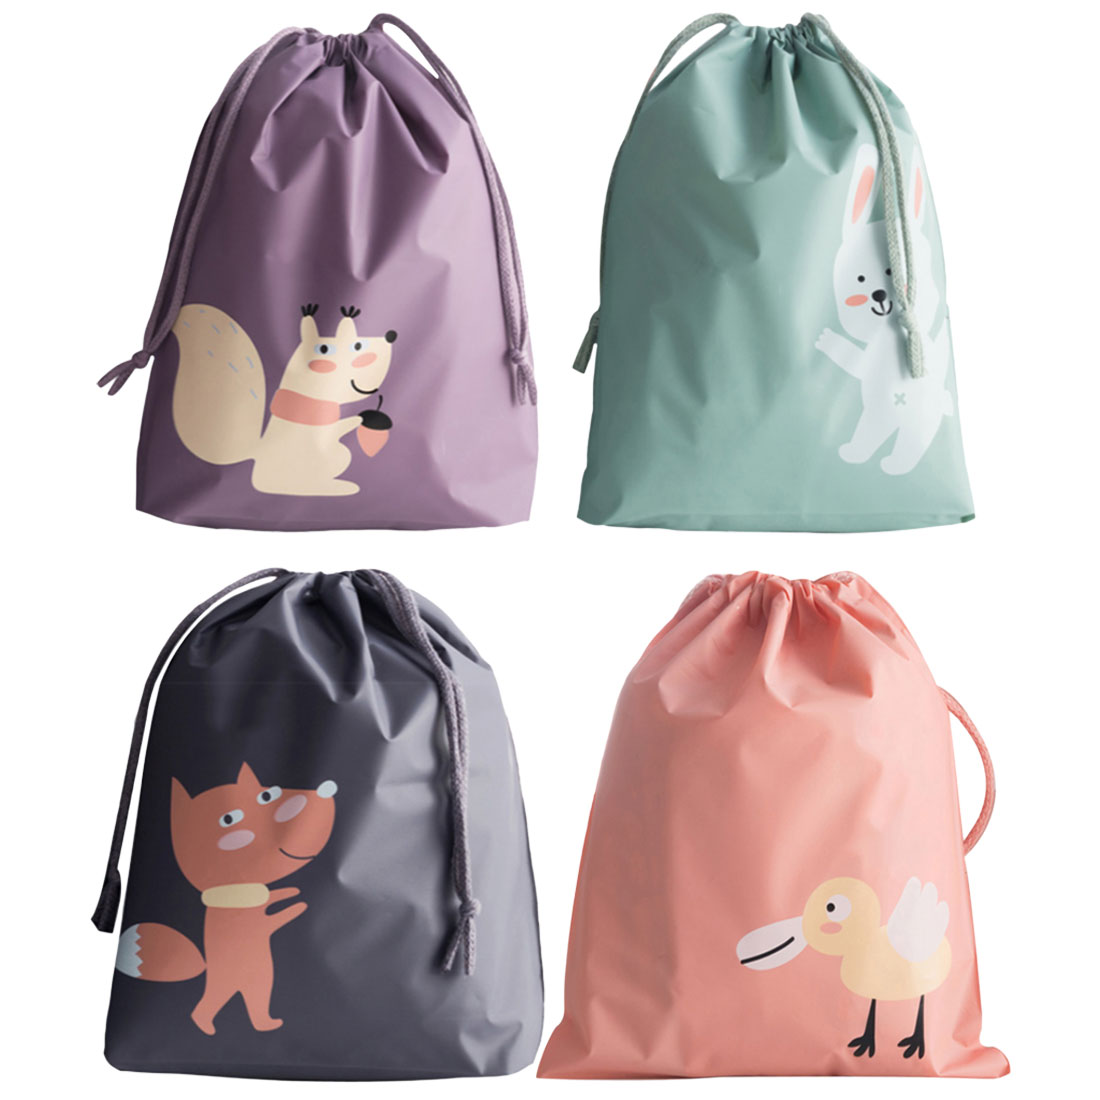 Portable Waterproof Cartoon Travel Pouch Suitcase Shoes Underwear Travel Storage Bag Organizer Clothes Packing Drawstring Bag